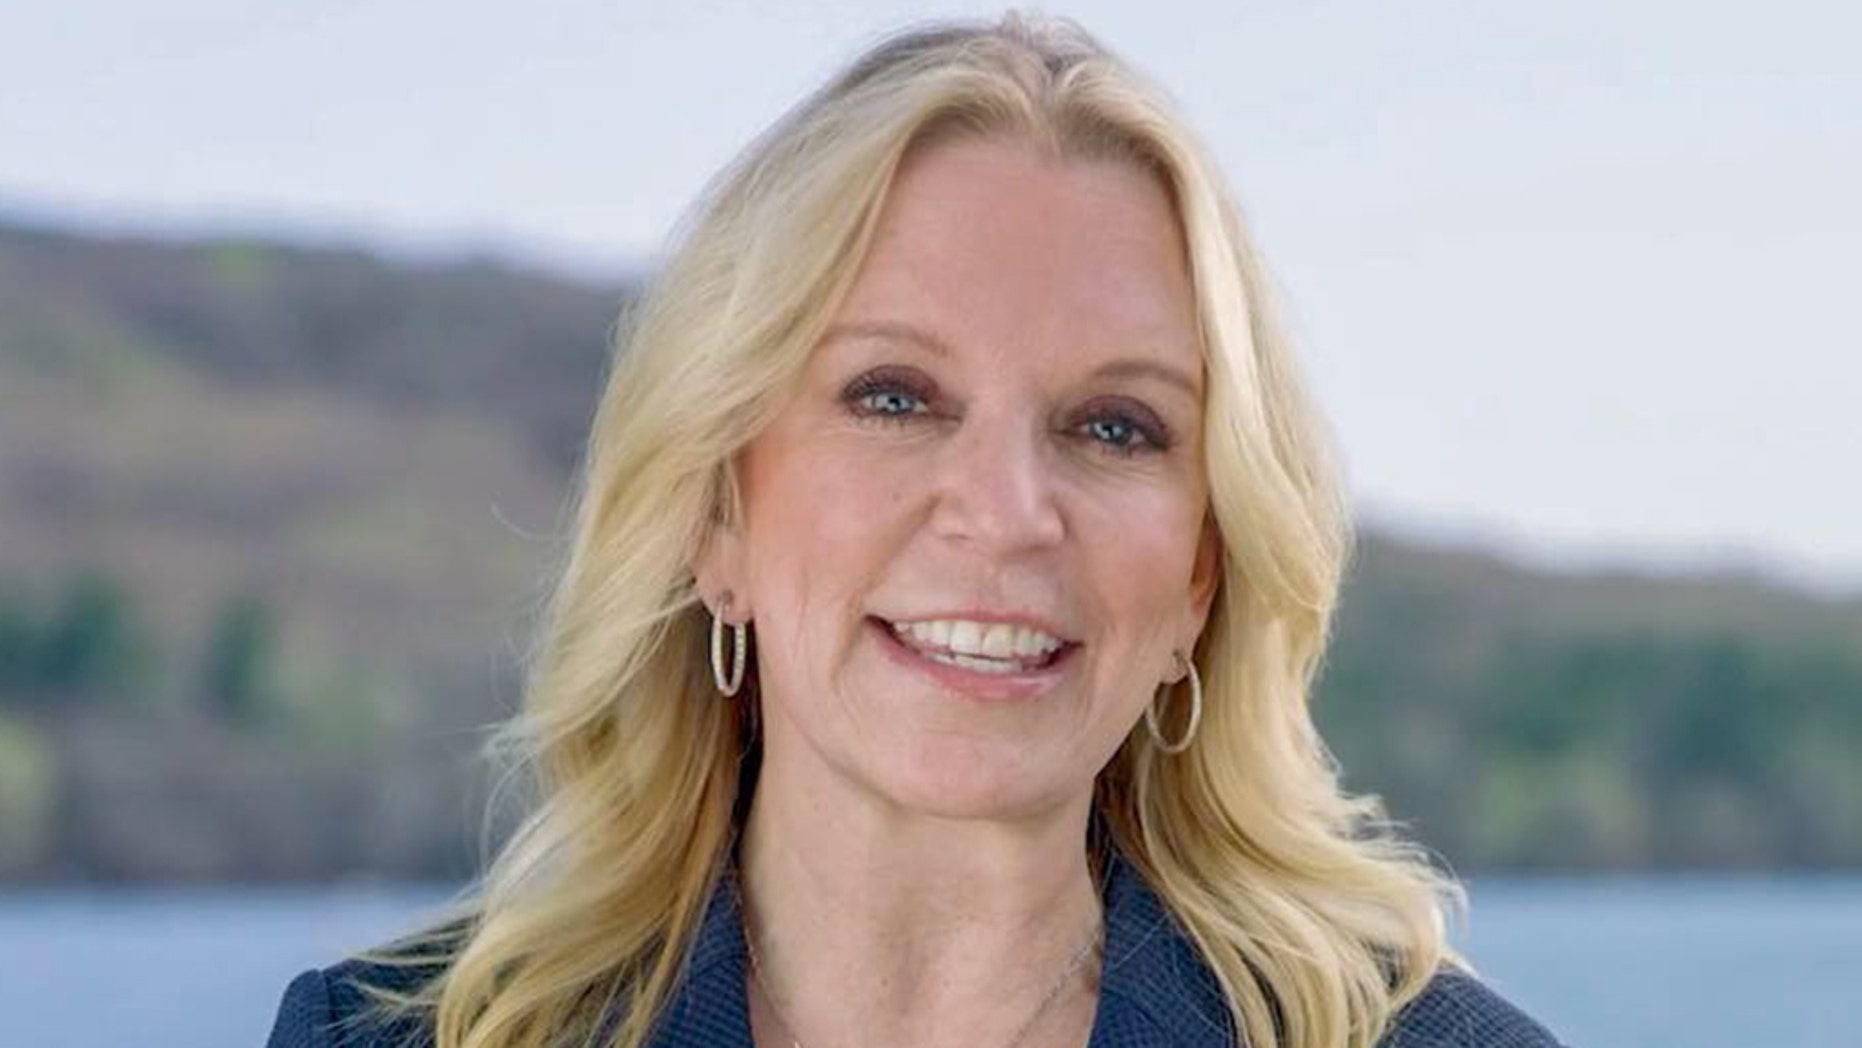 Republican Senate nominee Karin Housley called on the Minnesota attorney general to investigate claims of domestic abuse against Rep. Keith Ellison, a Democrat running for the attorney general seat.